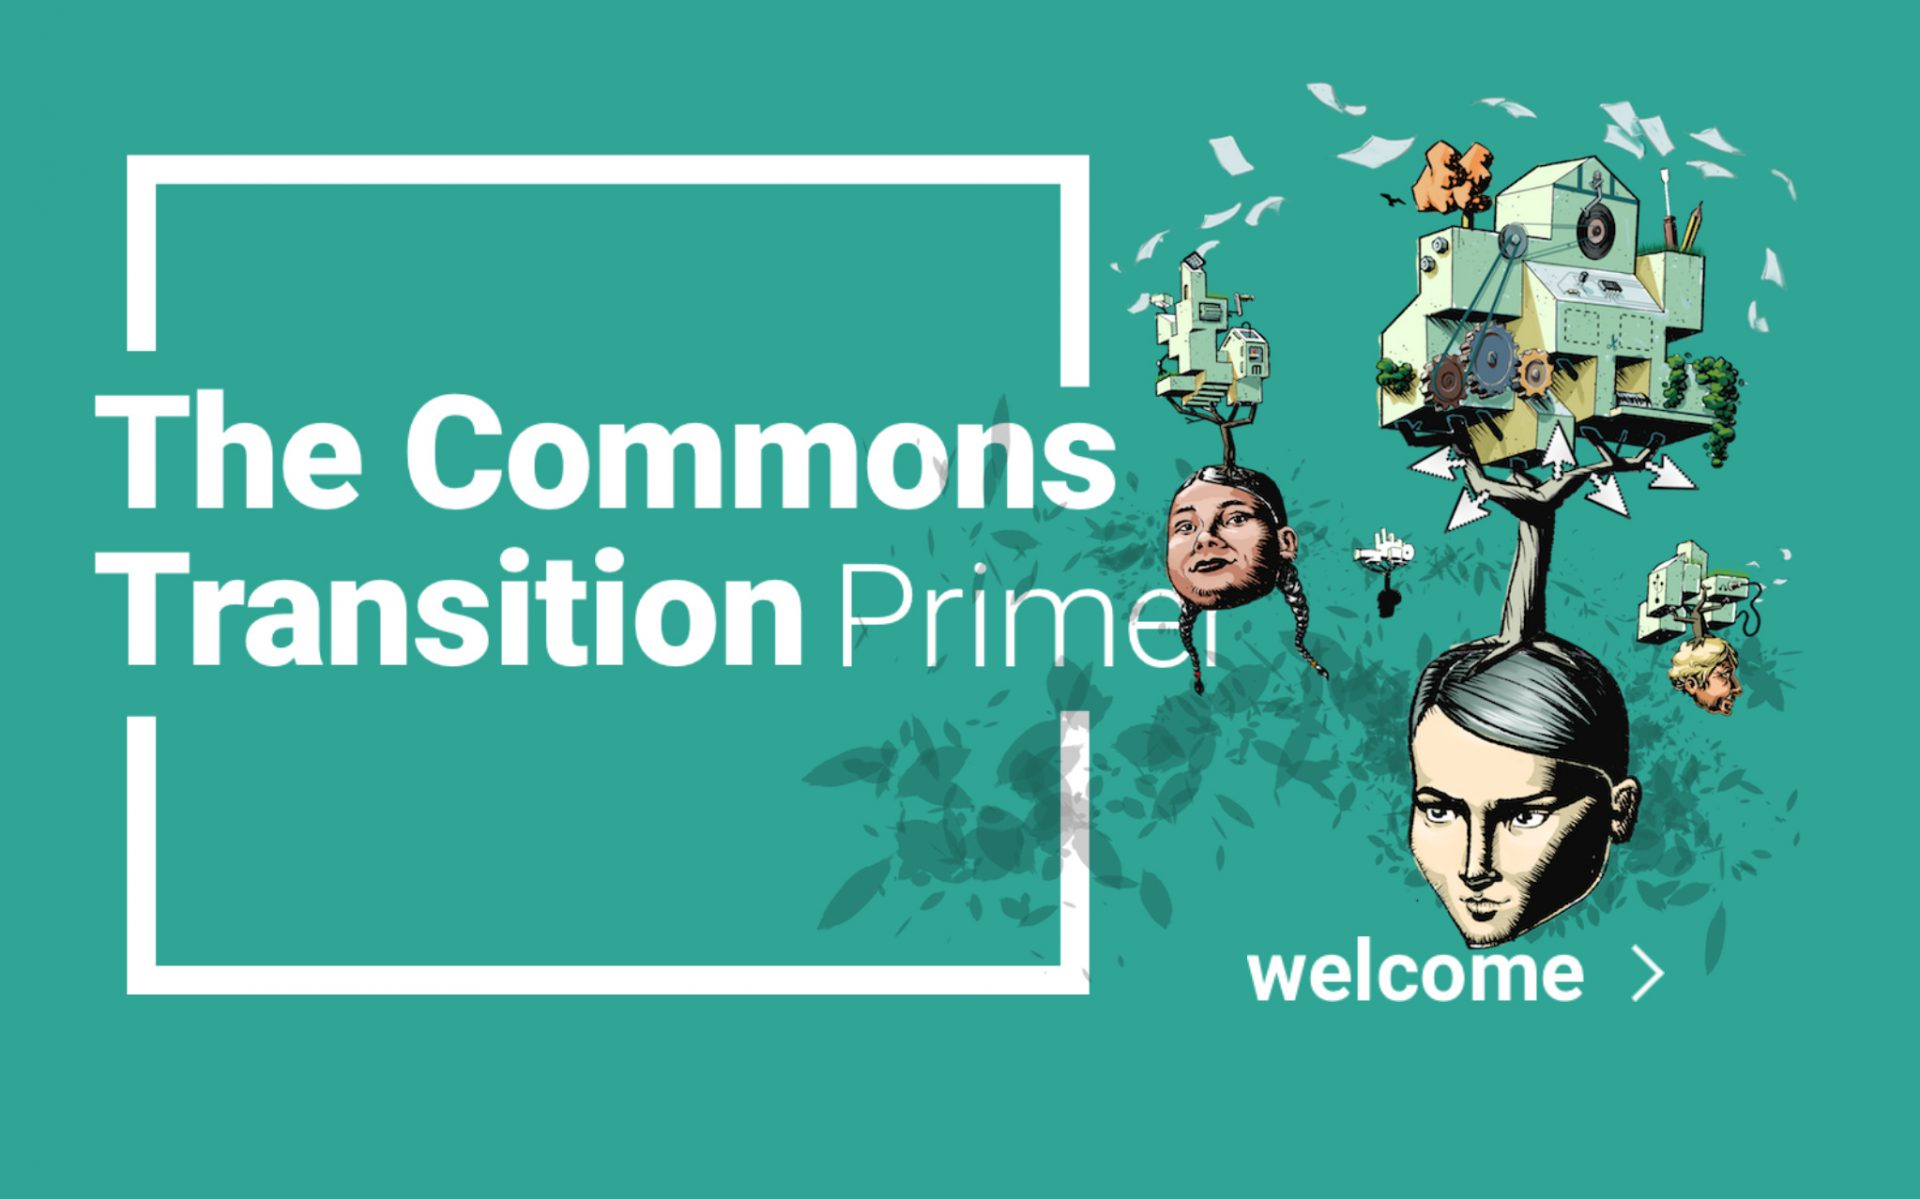 The Commons Transition Primer Demystifies and Delights